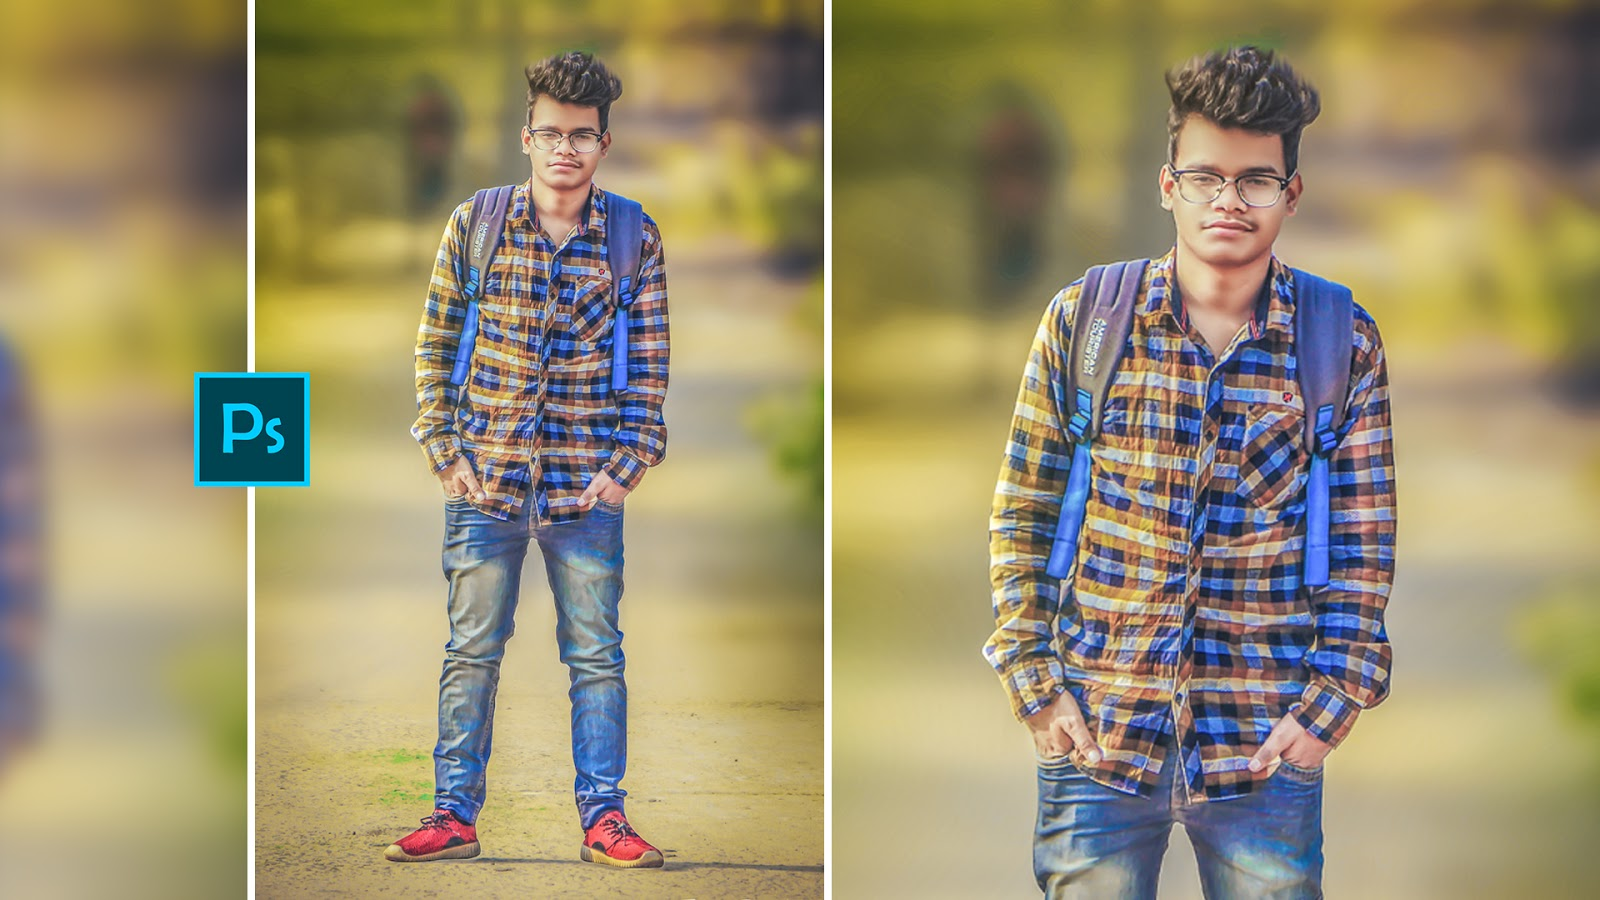 Background blur and color correction tutorial photoshop cc background blur and color correction tutorial photoshop cc baditri Image collections